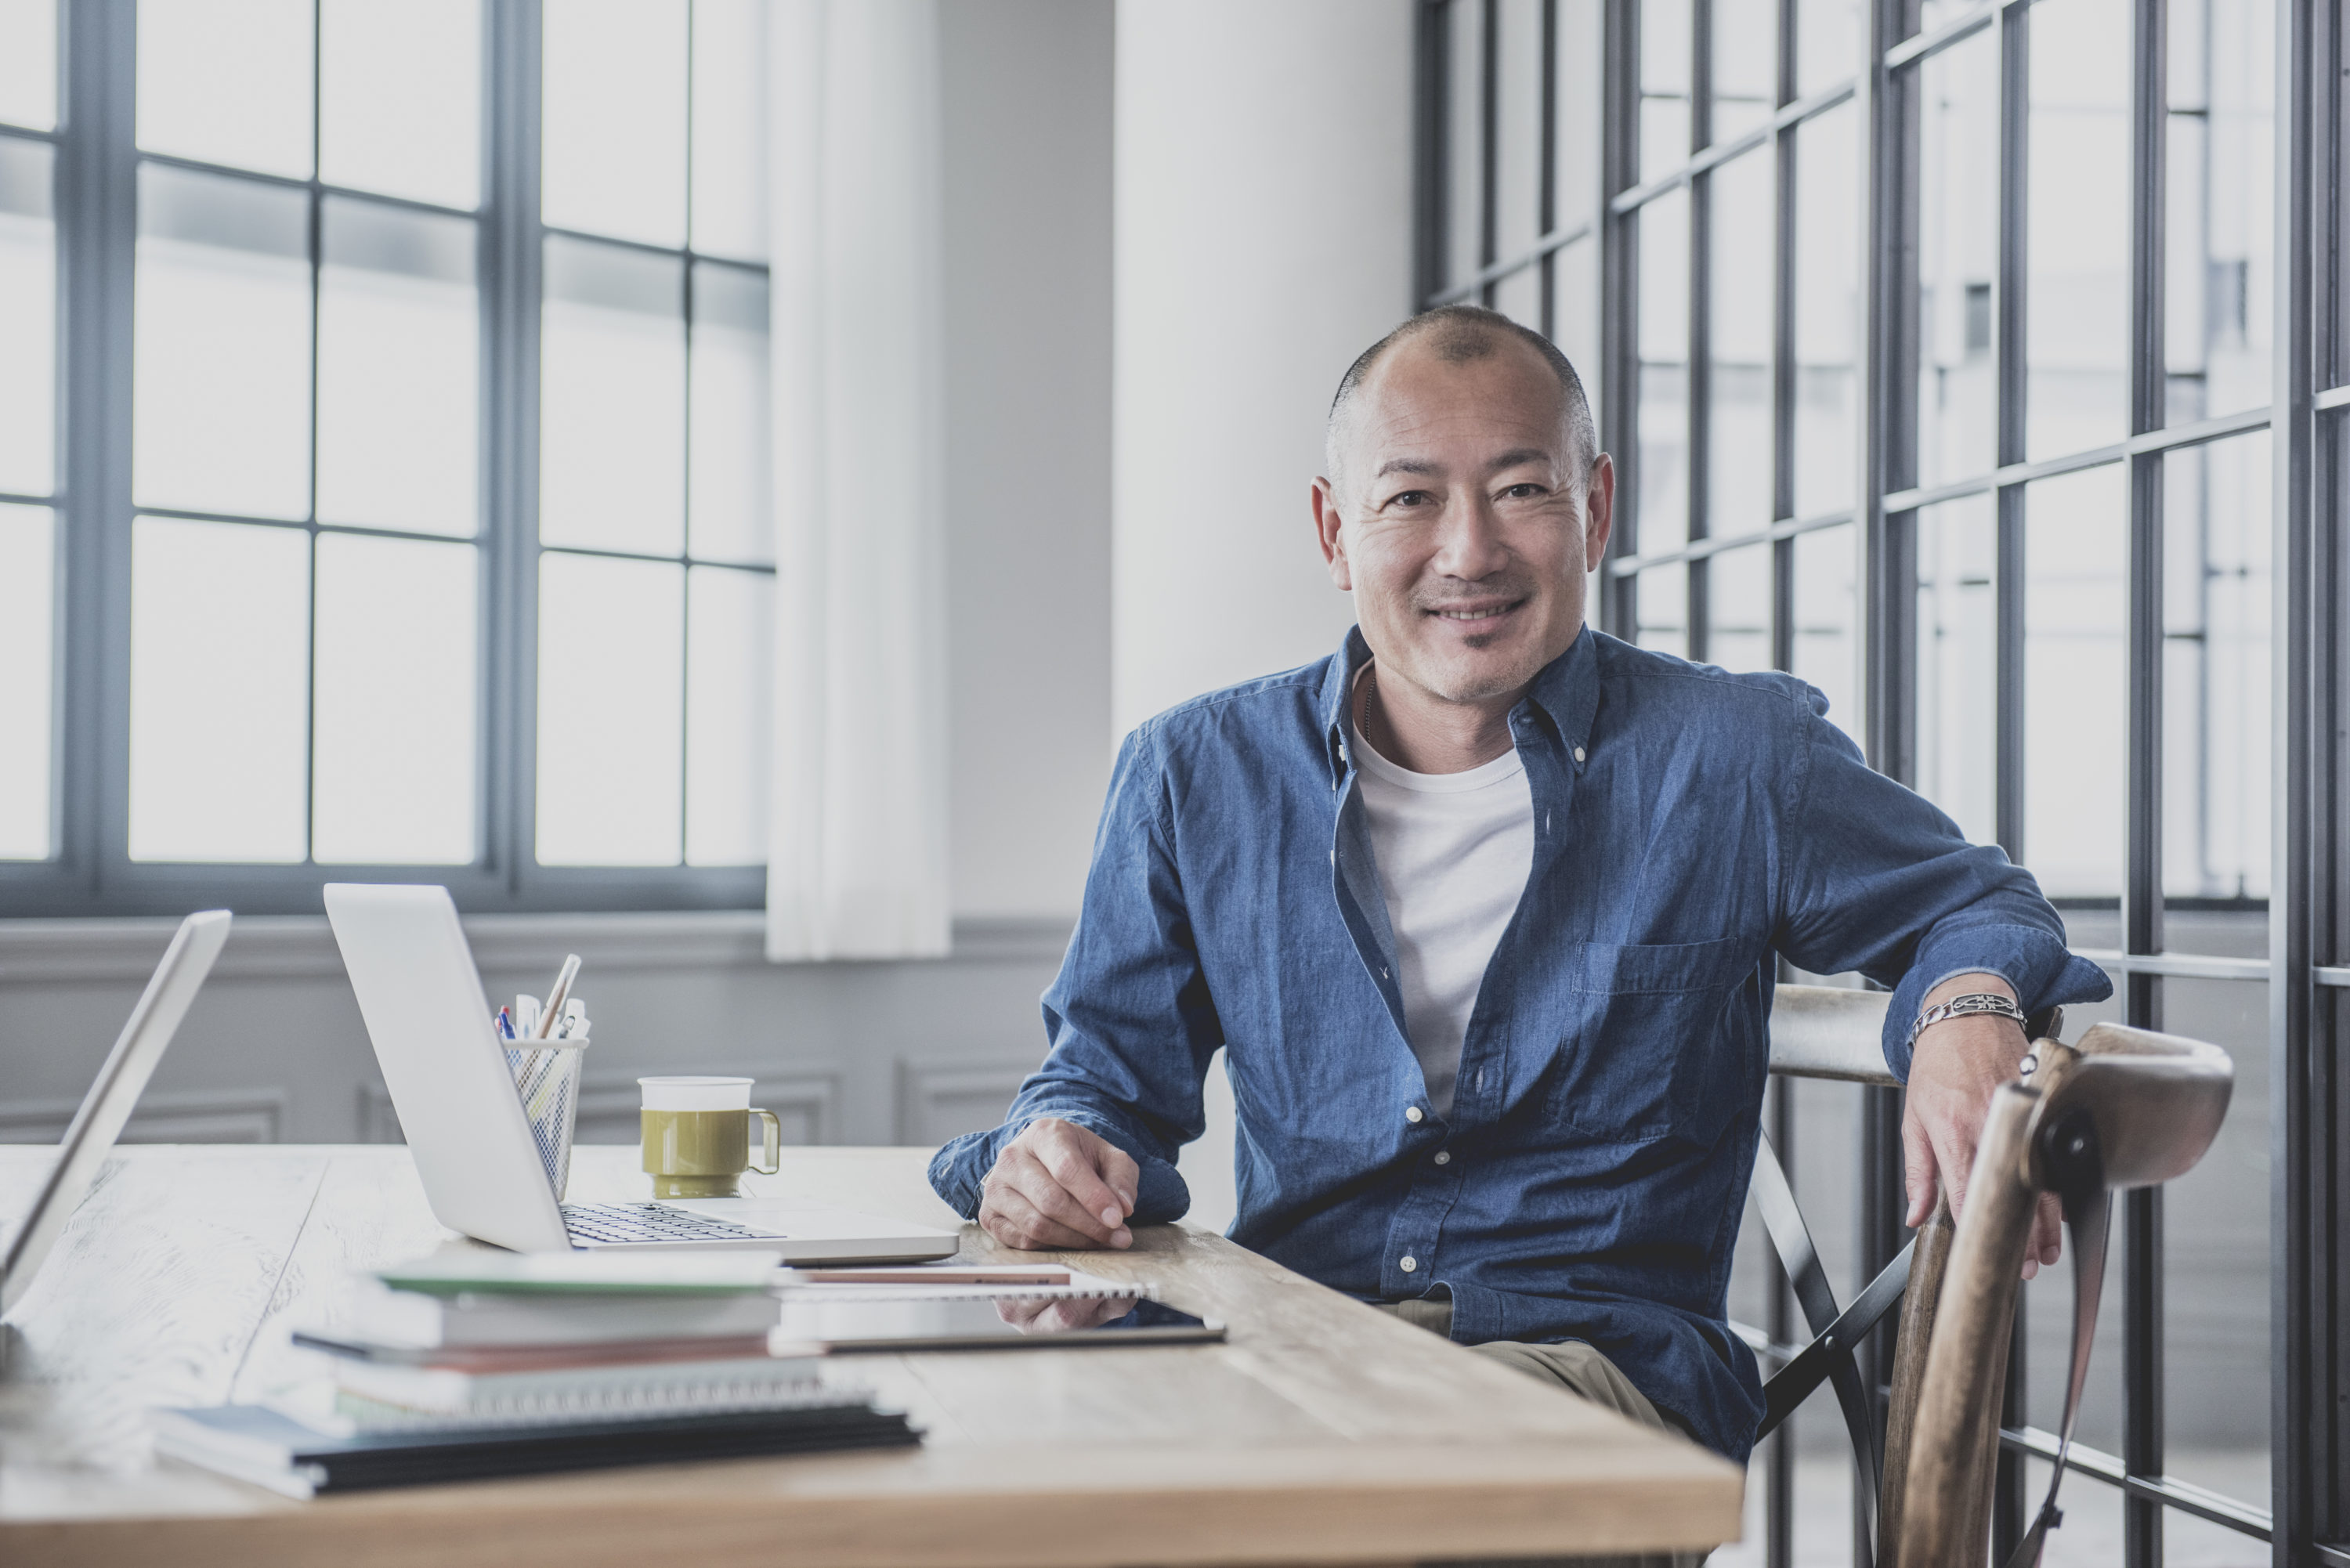 Japanese professional male worker sitting in modern studio with laptop, smiling to camera, Tokyo, Japan. Candid portrait of Asian man at work in creative agency.